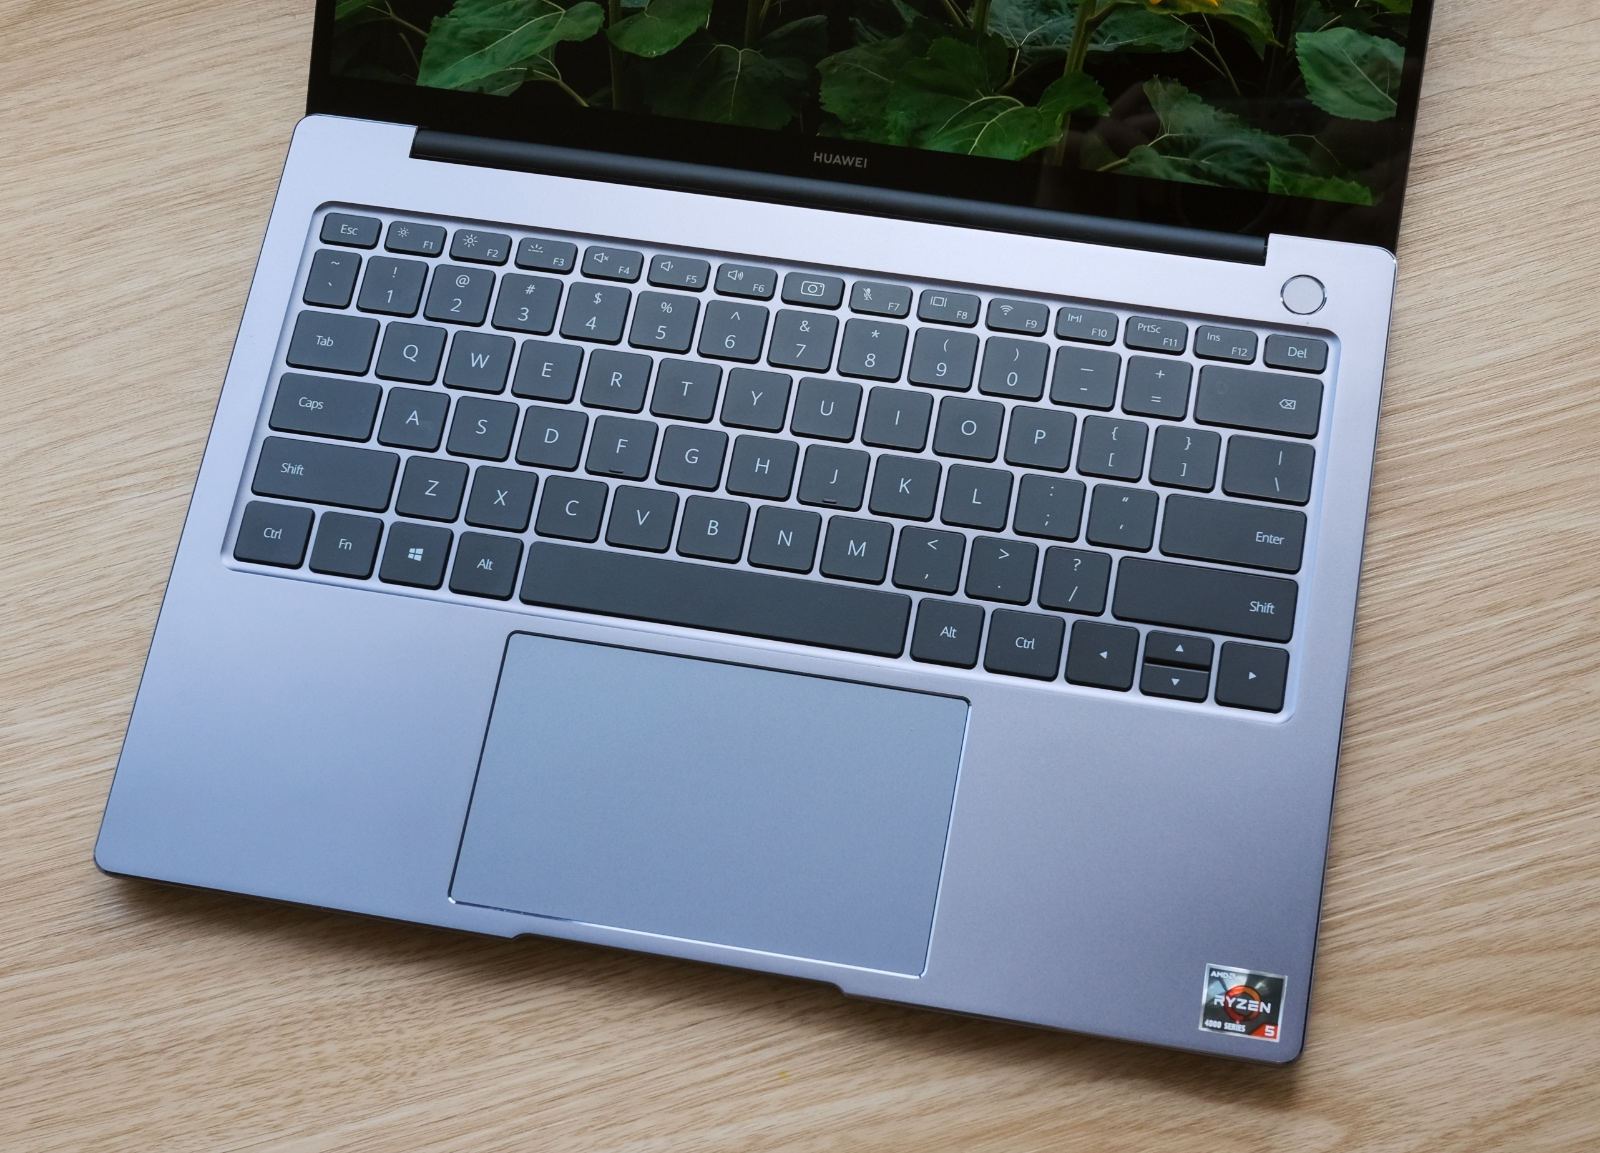 The trackpad is large and the keyboard is decent to type on.